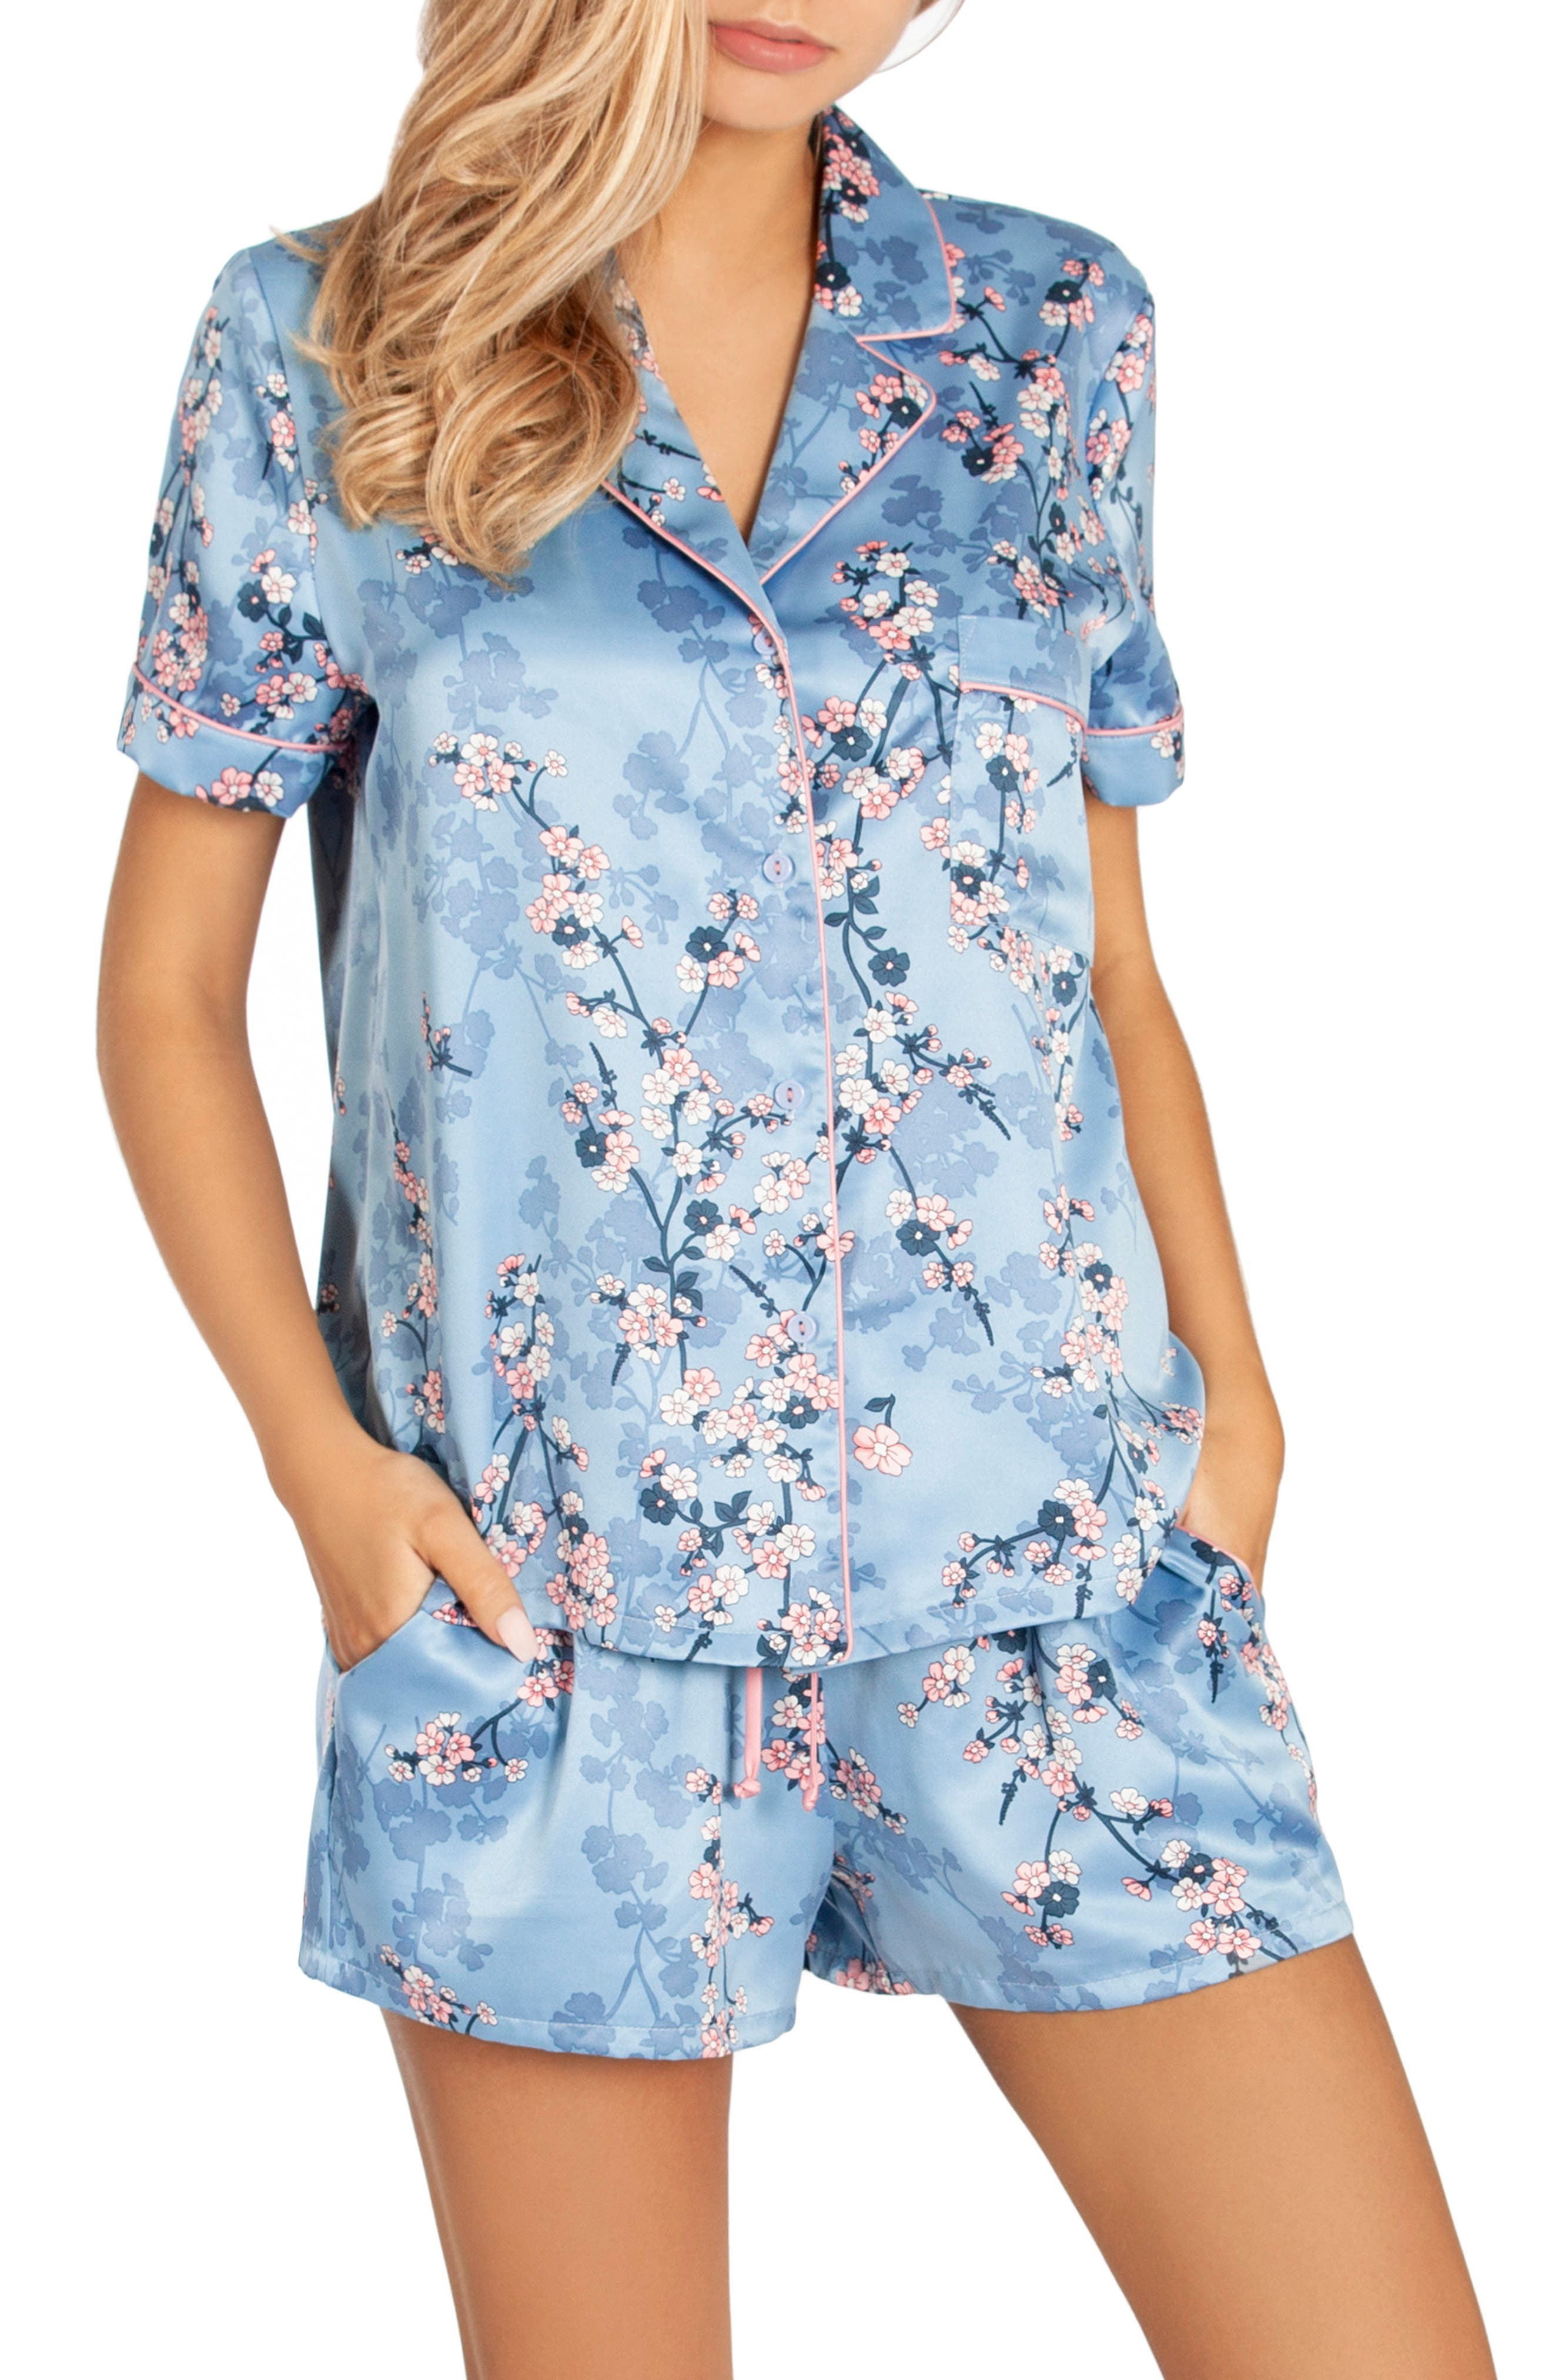 IN BLOOM BY JONQUIL, Satin Short Pajamas, Main thumbnail 1, color, PLUM BLOSSOM